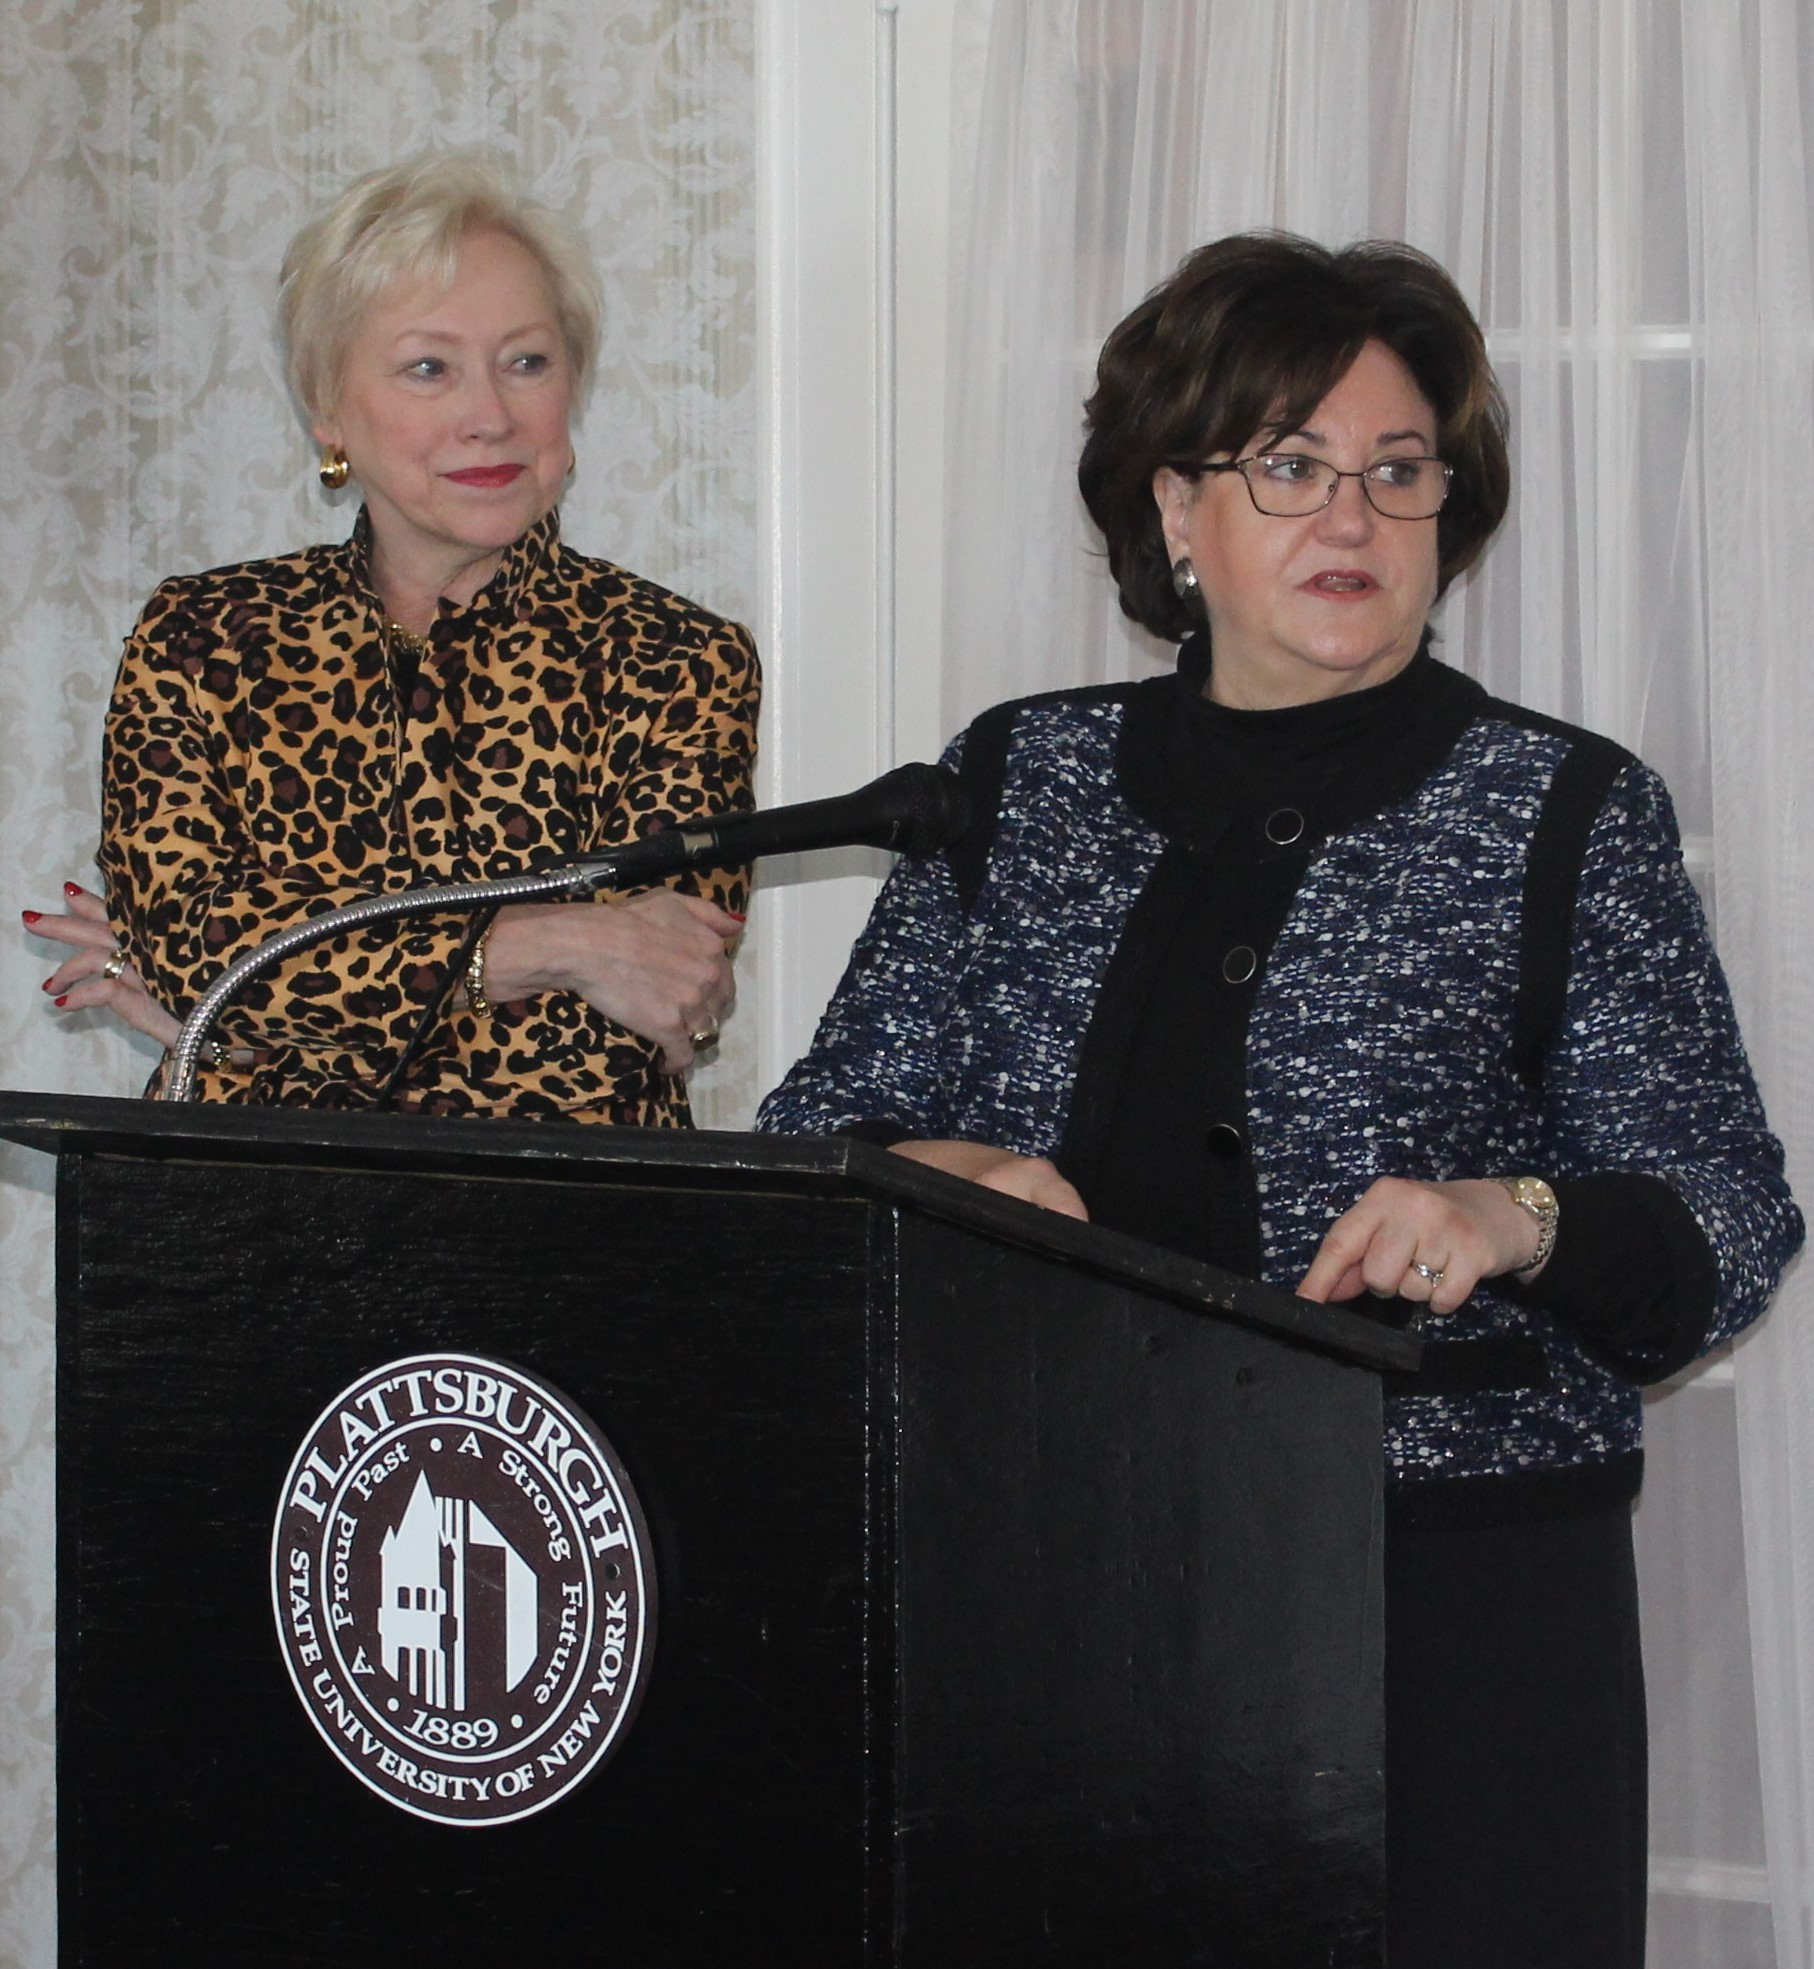 """SUNY Chancellor Nancy Zimpher and New York State Education Department Commissioner MaryEllen Elia speaking to North Country Thrive Leadership Council Members at their October 14th meeting at Valcour Inn and Boathouse. """"All we need is a small, dedicated team that will keep the leadership council together, that will drive the data, that will give opportunity to everyone to intervene, to move the dial and seal the leaks,"""" Zimpher stated.  READ the FULL ARTICLE HERE"""